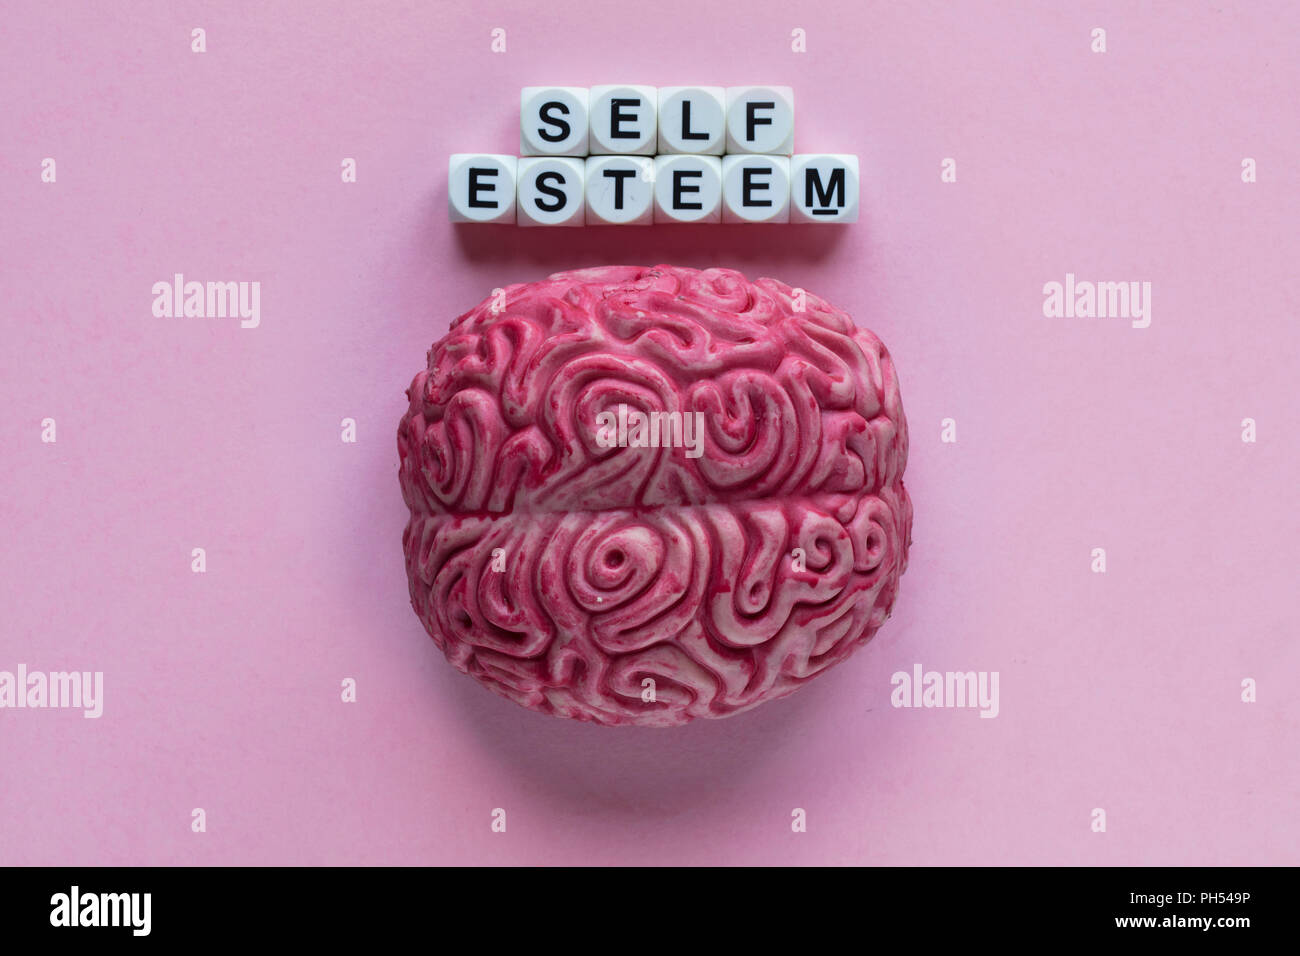 Human brain with the word self esteem. Mental health concept - Stock Image